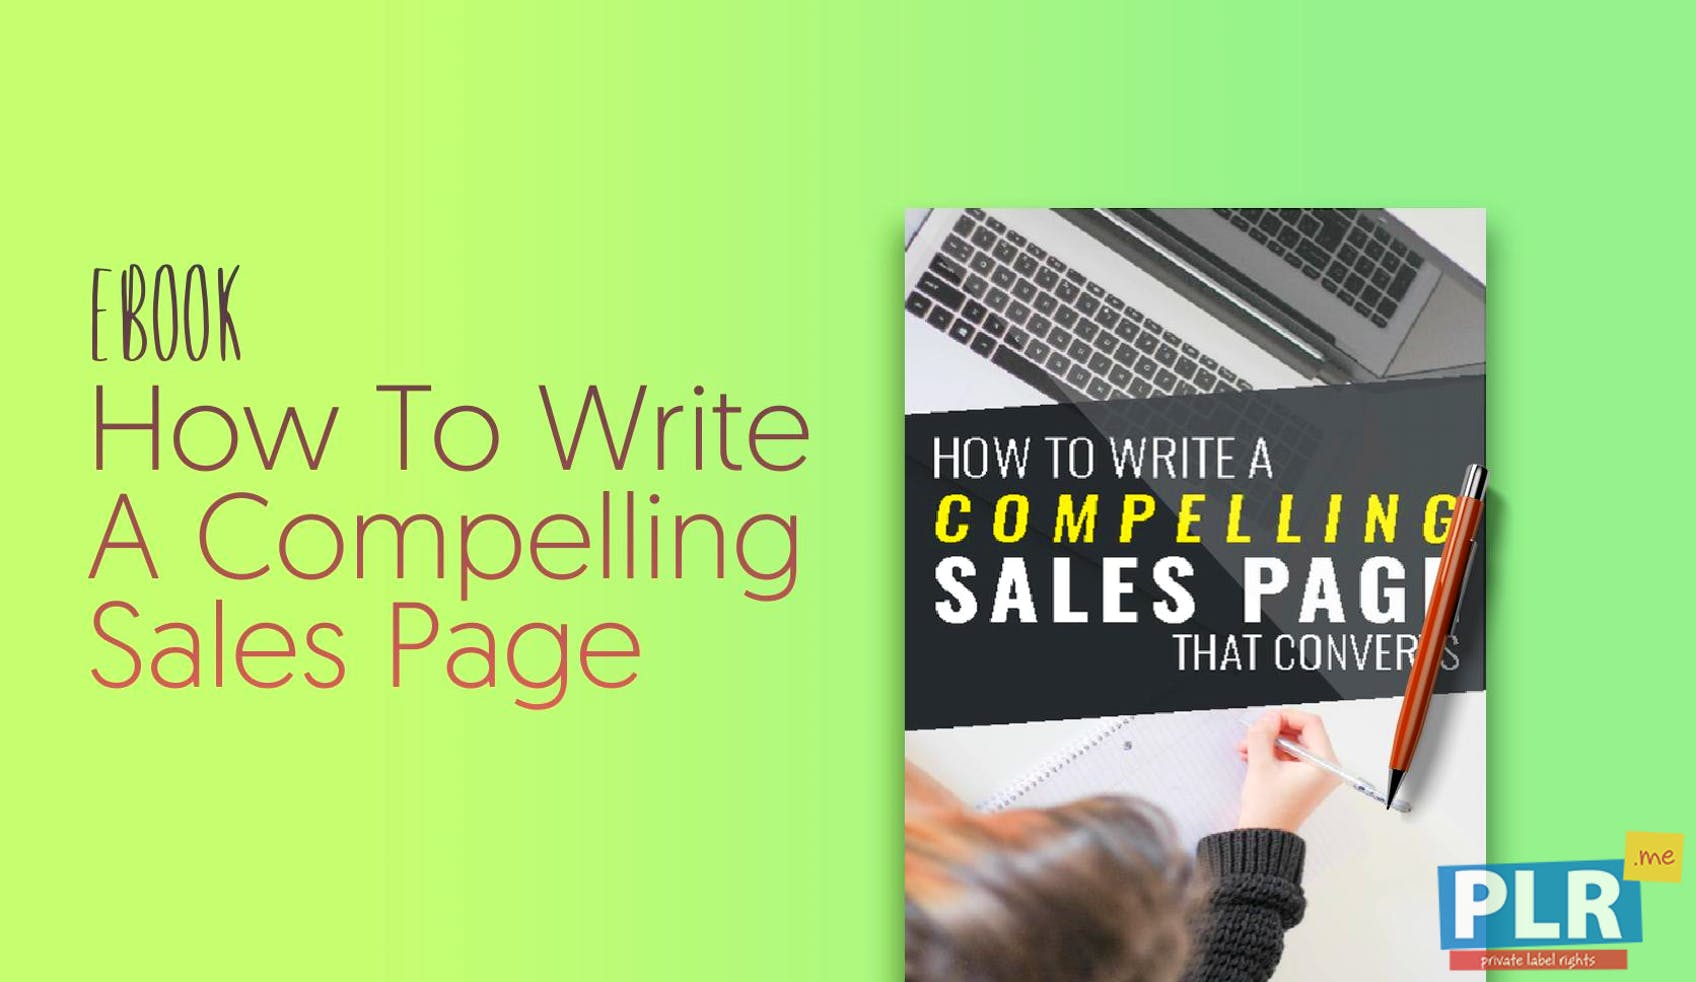 How To Write A Compelling Sales Page